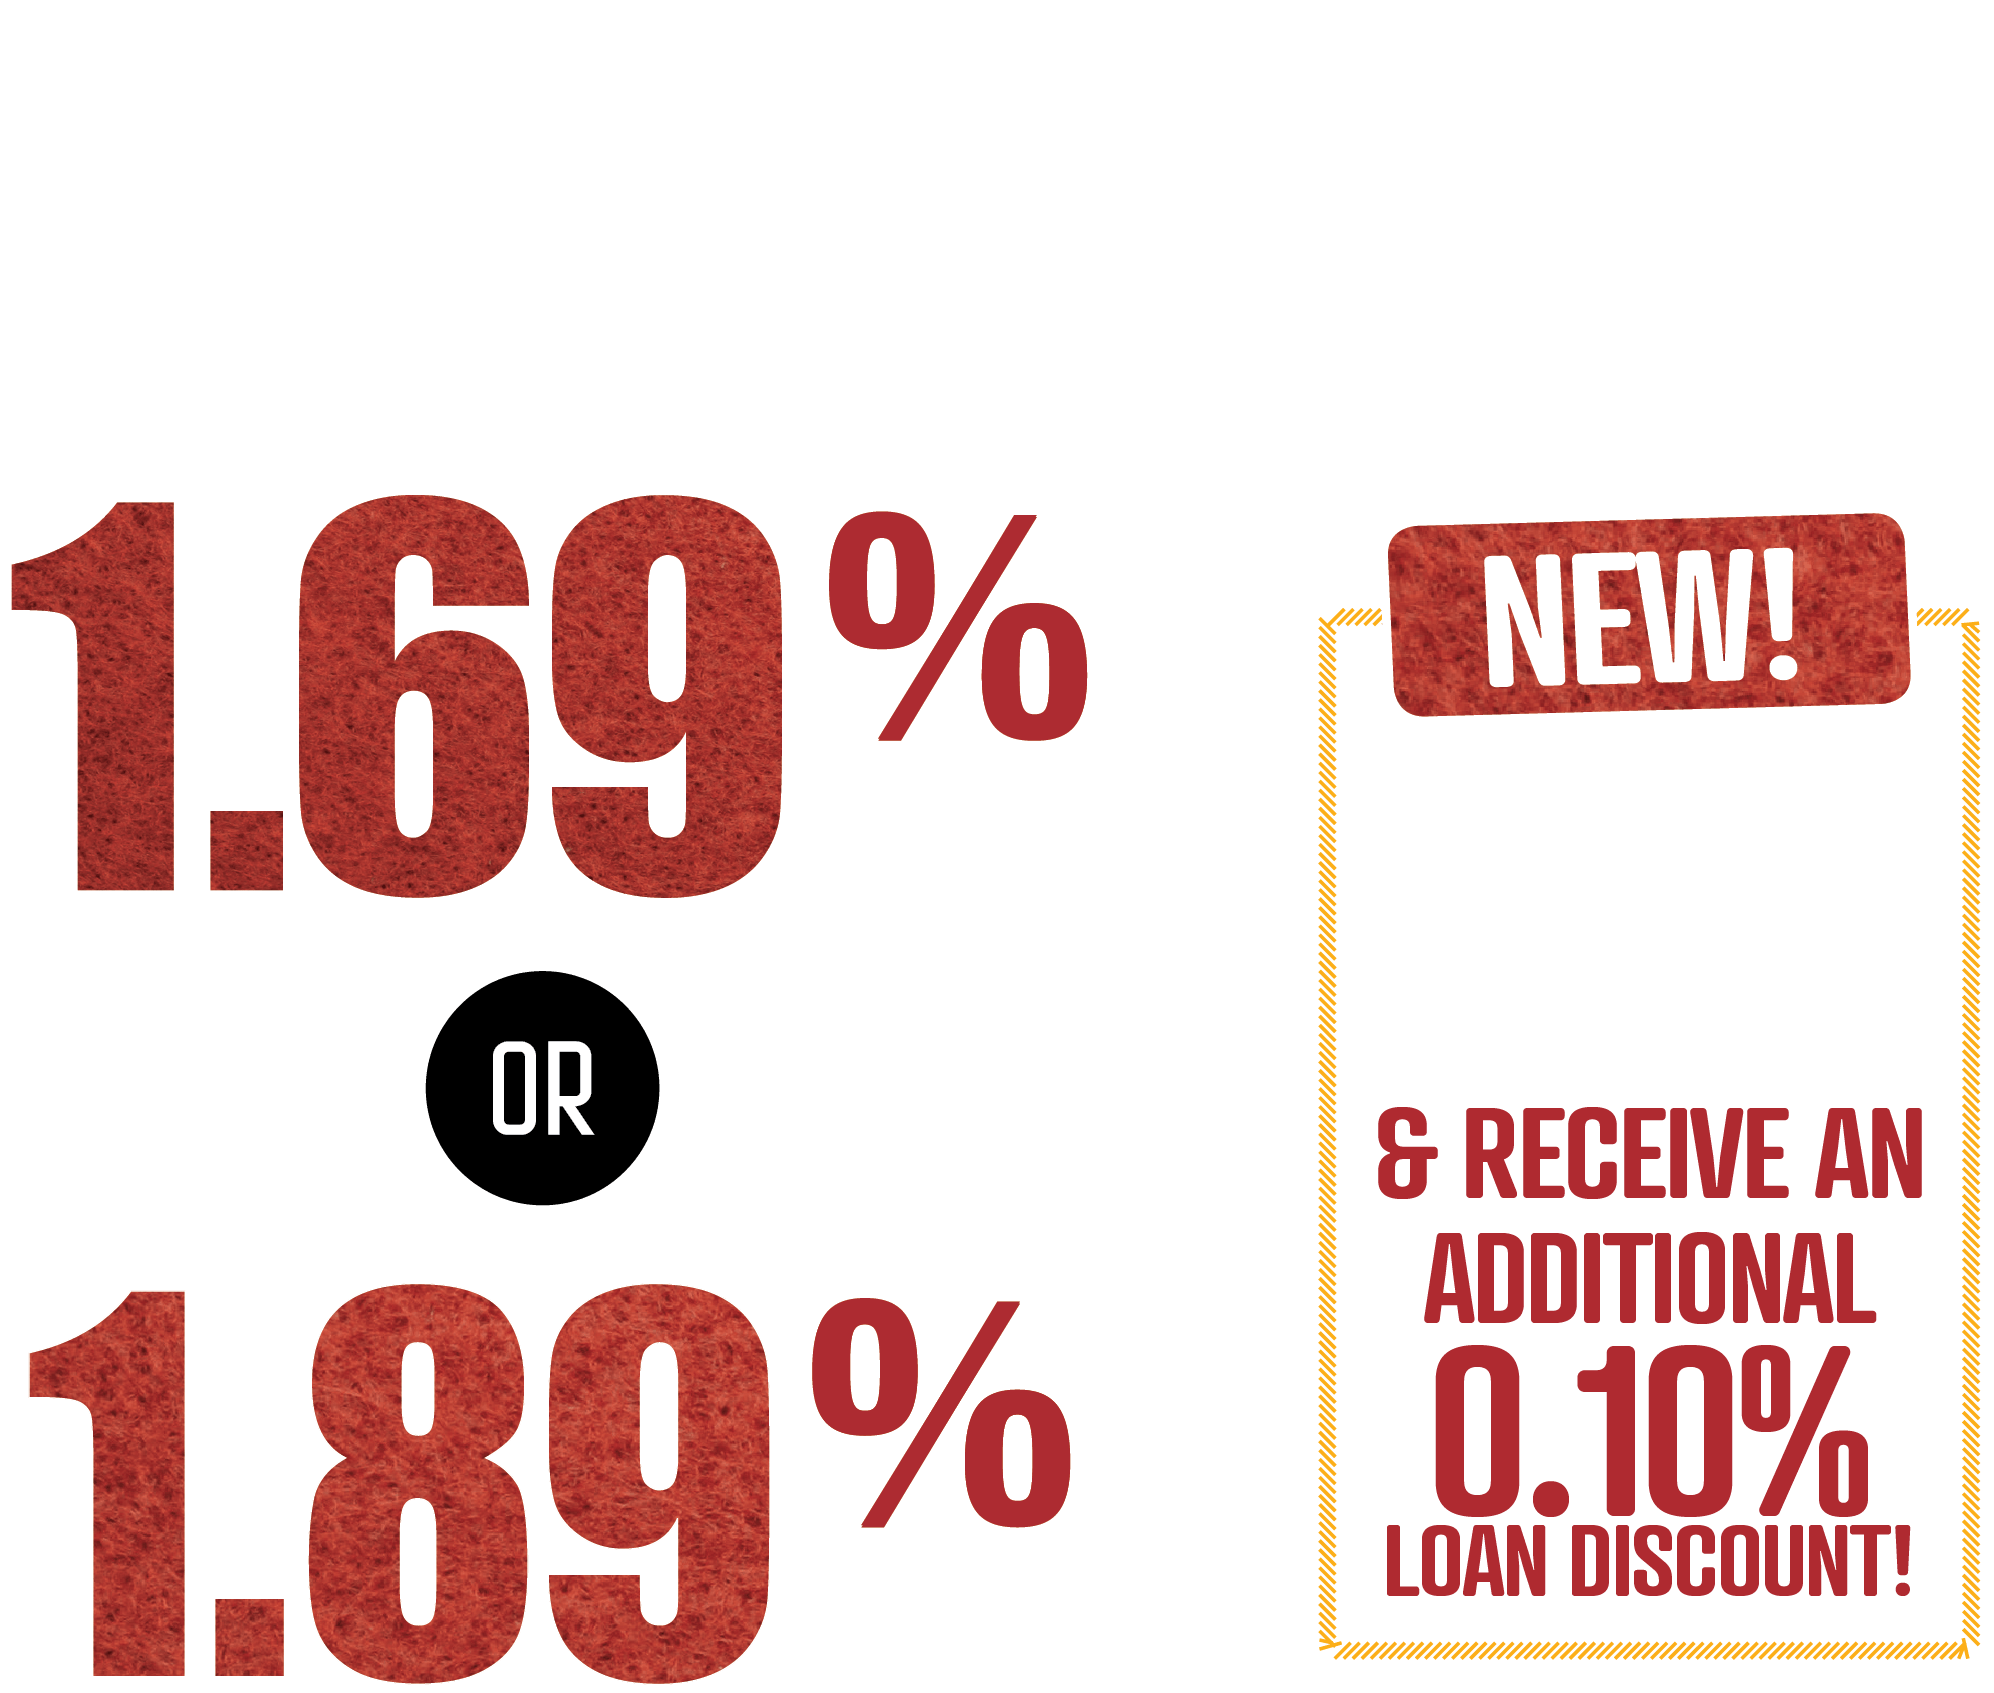 Score with a great interest rate